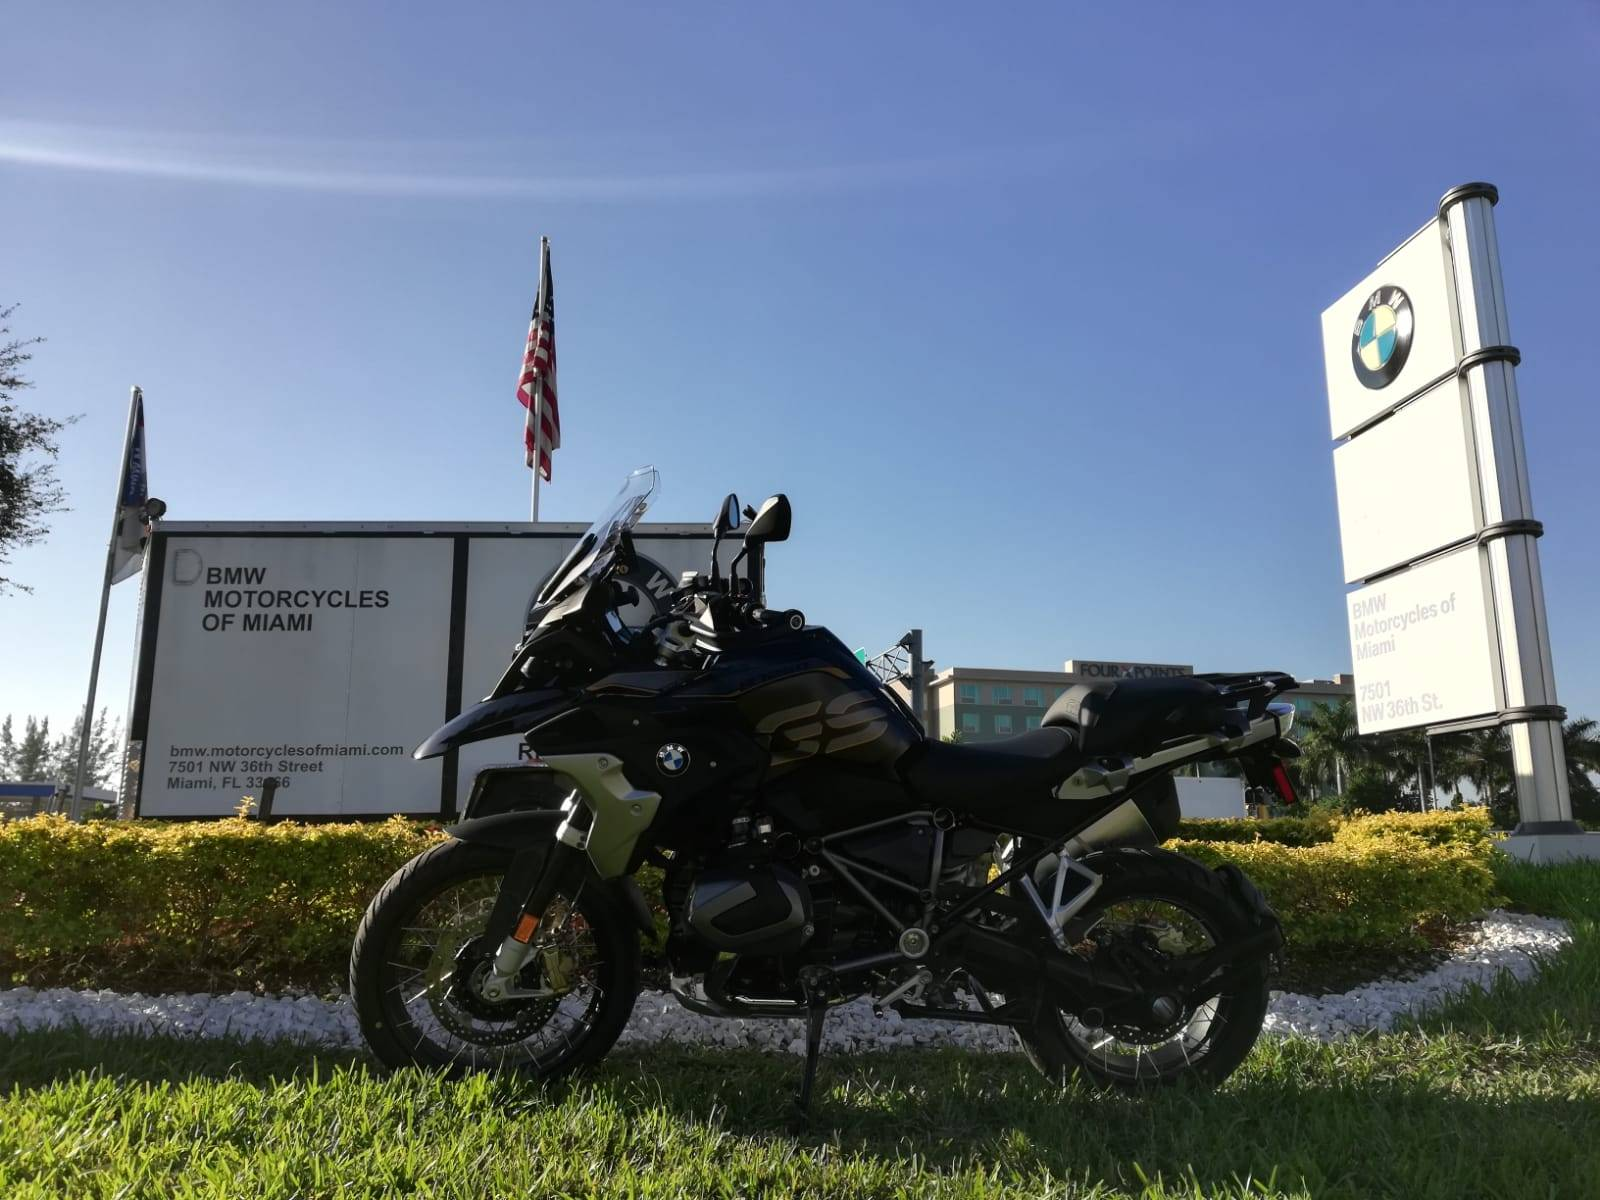 New 2019 BMW R 1250 GS for sale, BMW R 1250GS for sale, BMW Motorcycle GS, new BMW GS, Spirit of GS, BMW Motorcycles of Miami, Motorcycles of Miami, Motorcycles Miami, New Motorcycles, Used Motorcycles, pre-owned. #BMWMotorcyclesOfMiami #MotorcyclesOfMiami. - Photo 1